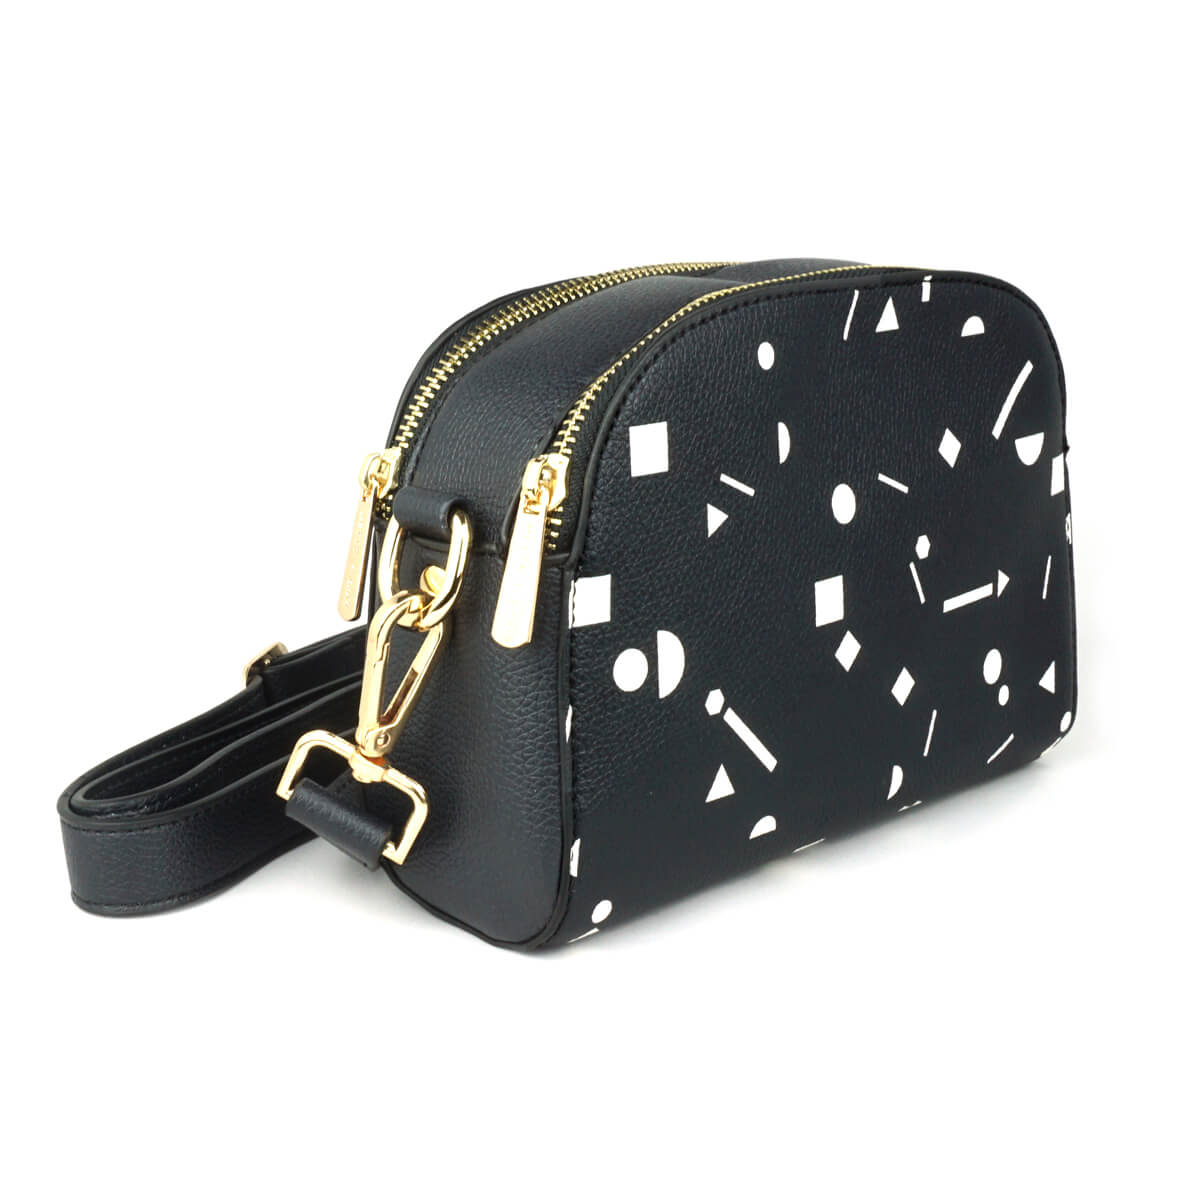 Shapes - Luxury Black   White Vegan Cross Body Messenger Bag – Hetty+Sam 3011e7fd512ff